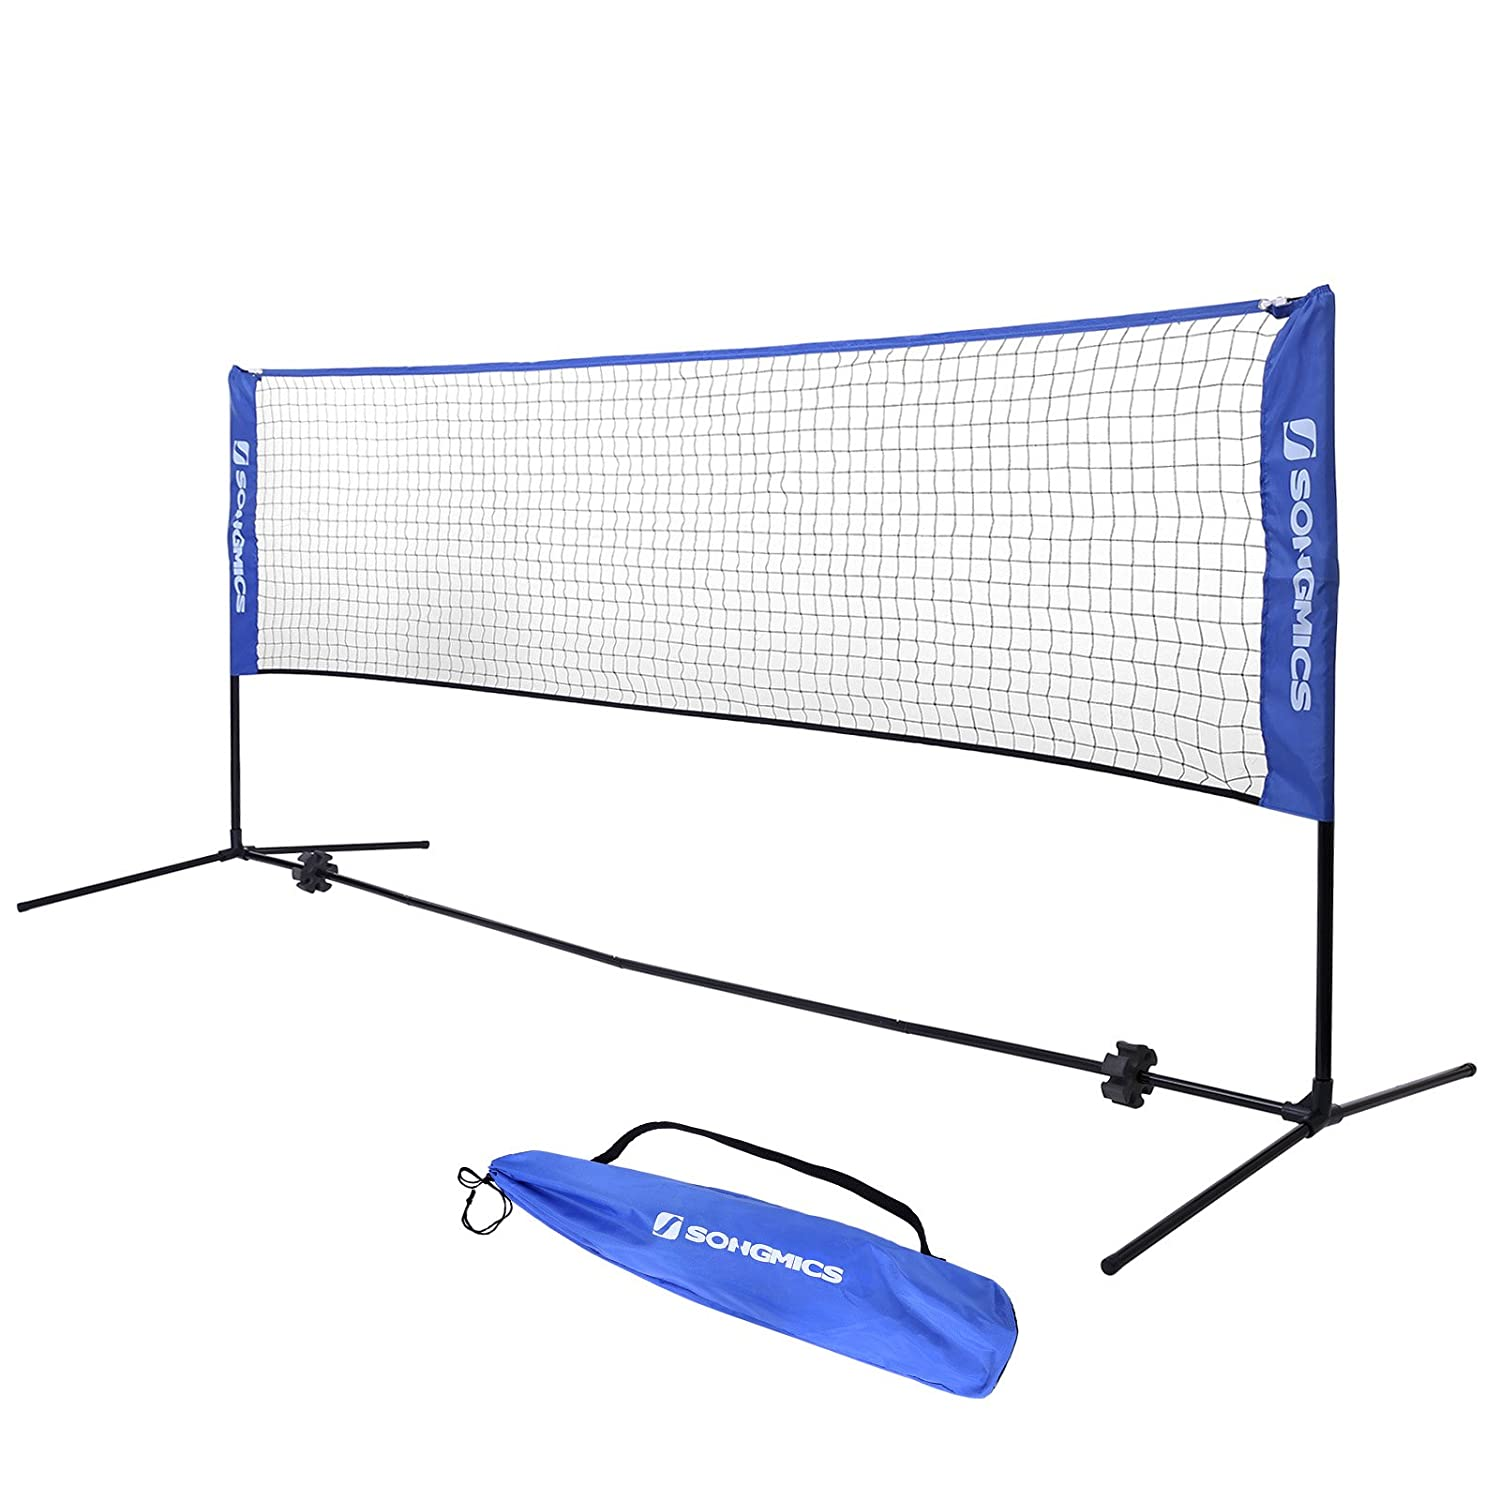 SONGMICS 3m Tennis Badminton Net Portable Height Adjustable with Stand SYQ300